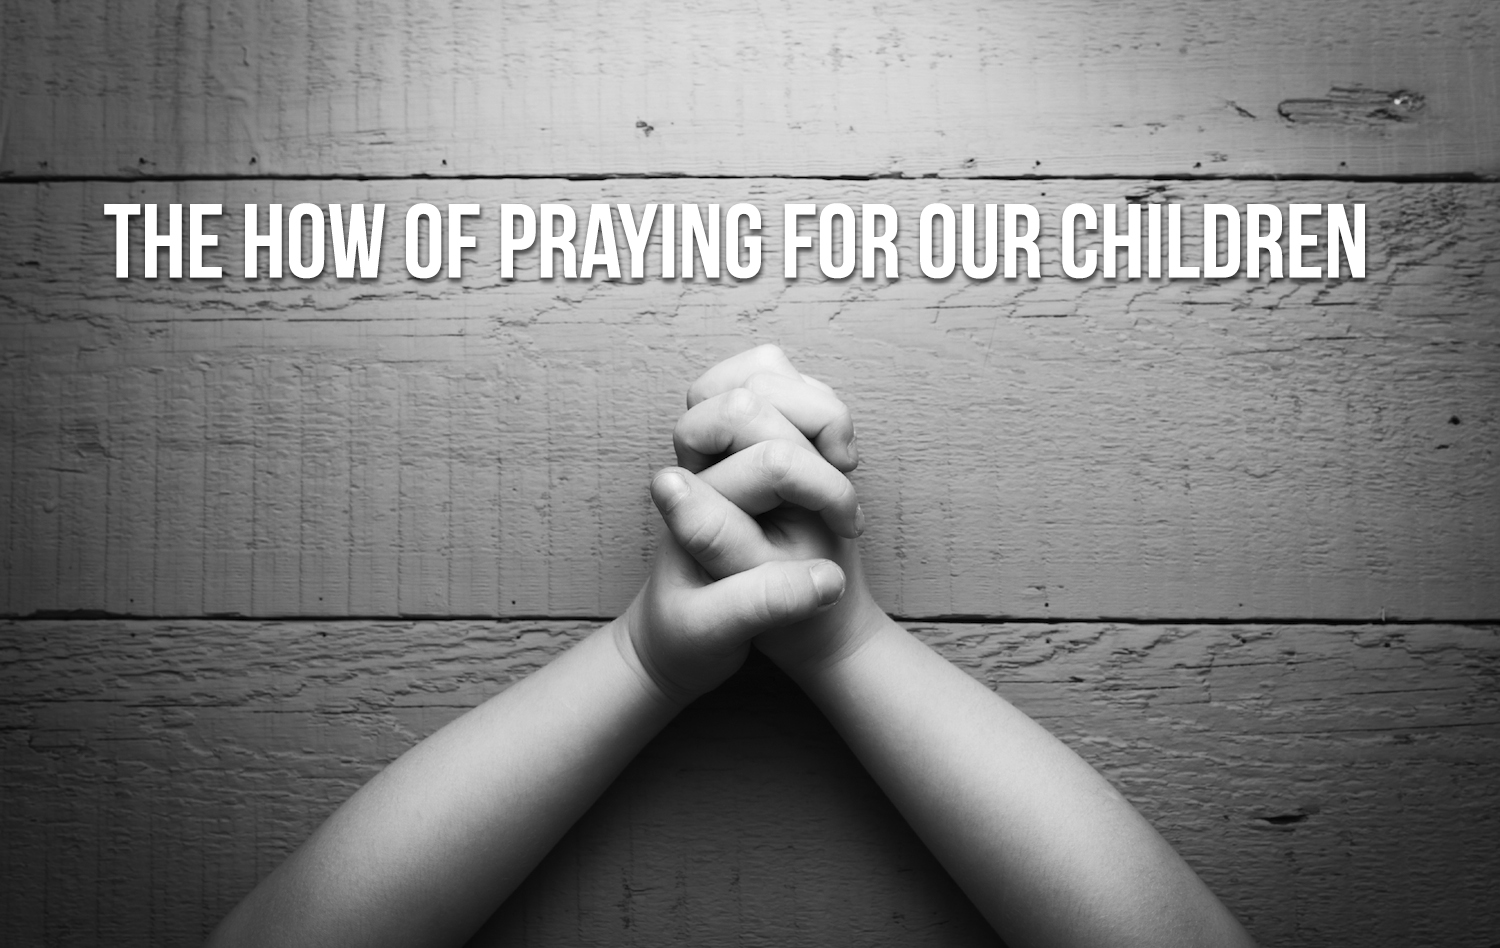 Pray for children blog